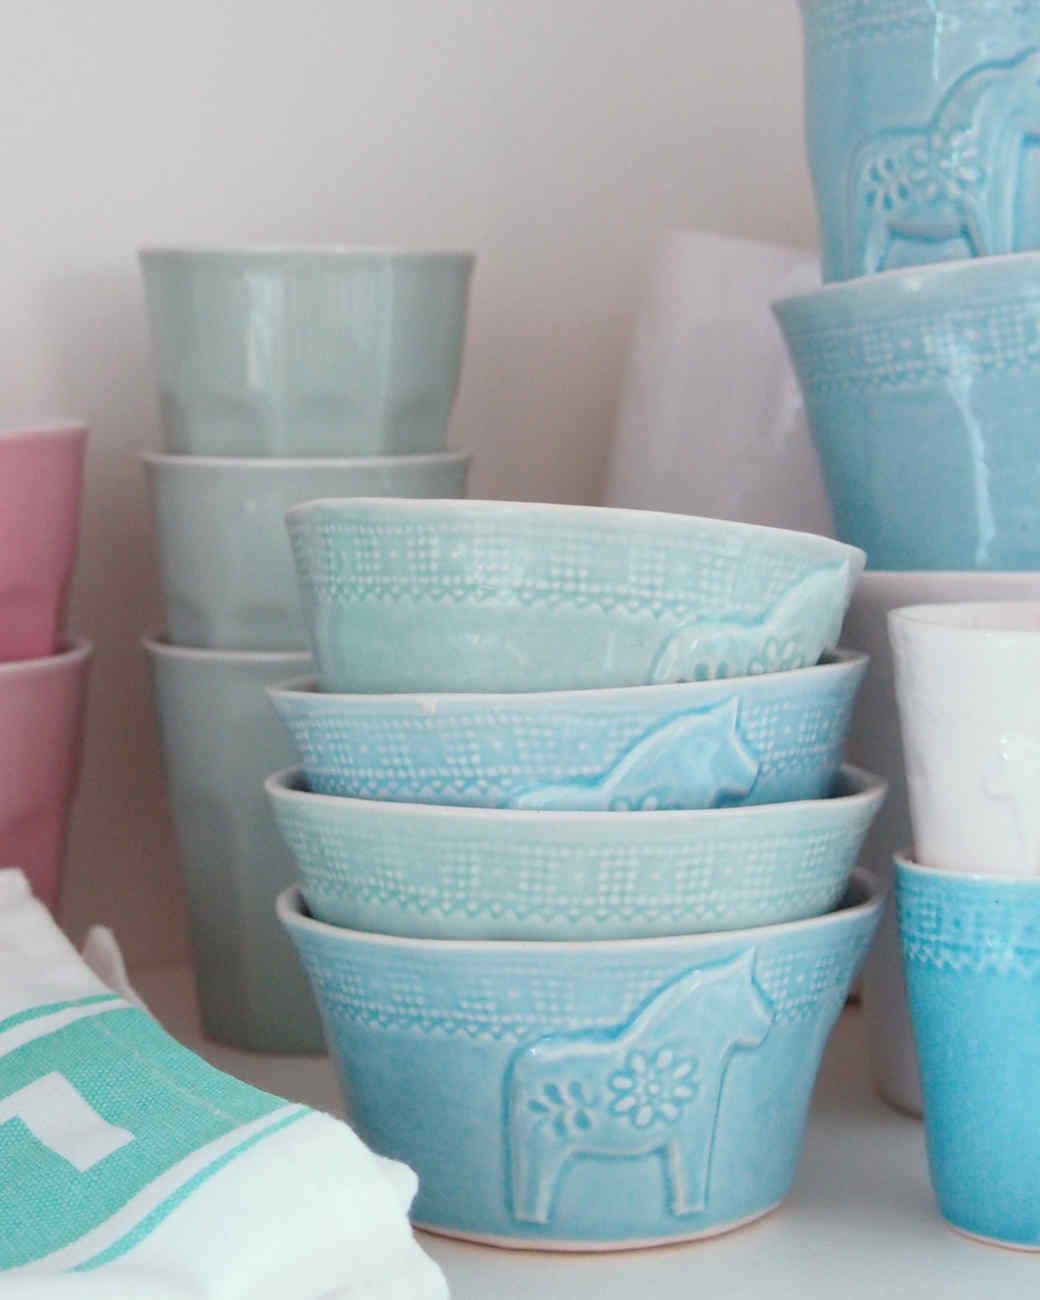 7-group-together-ceramics-will-taylor.jpg